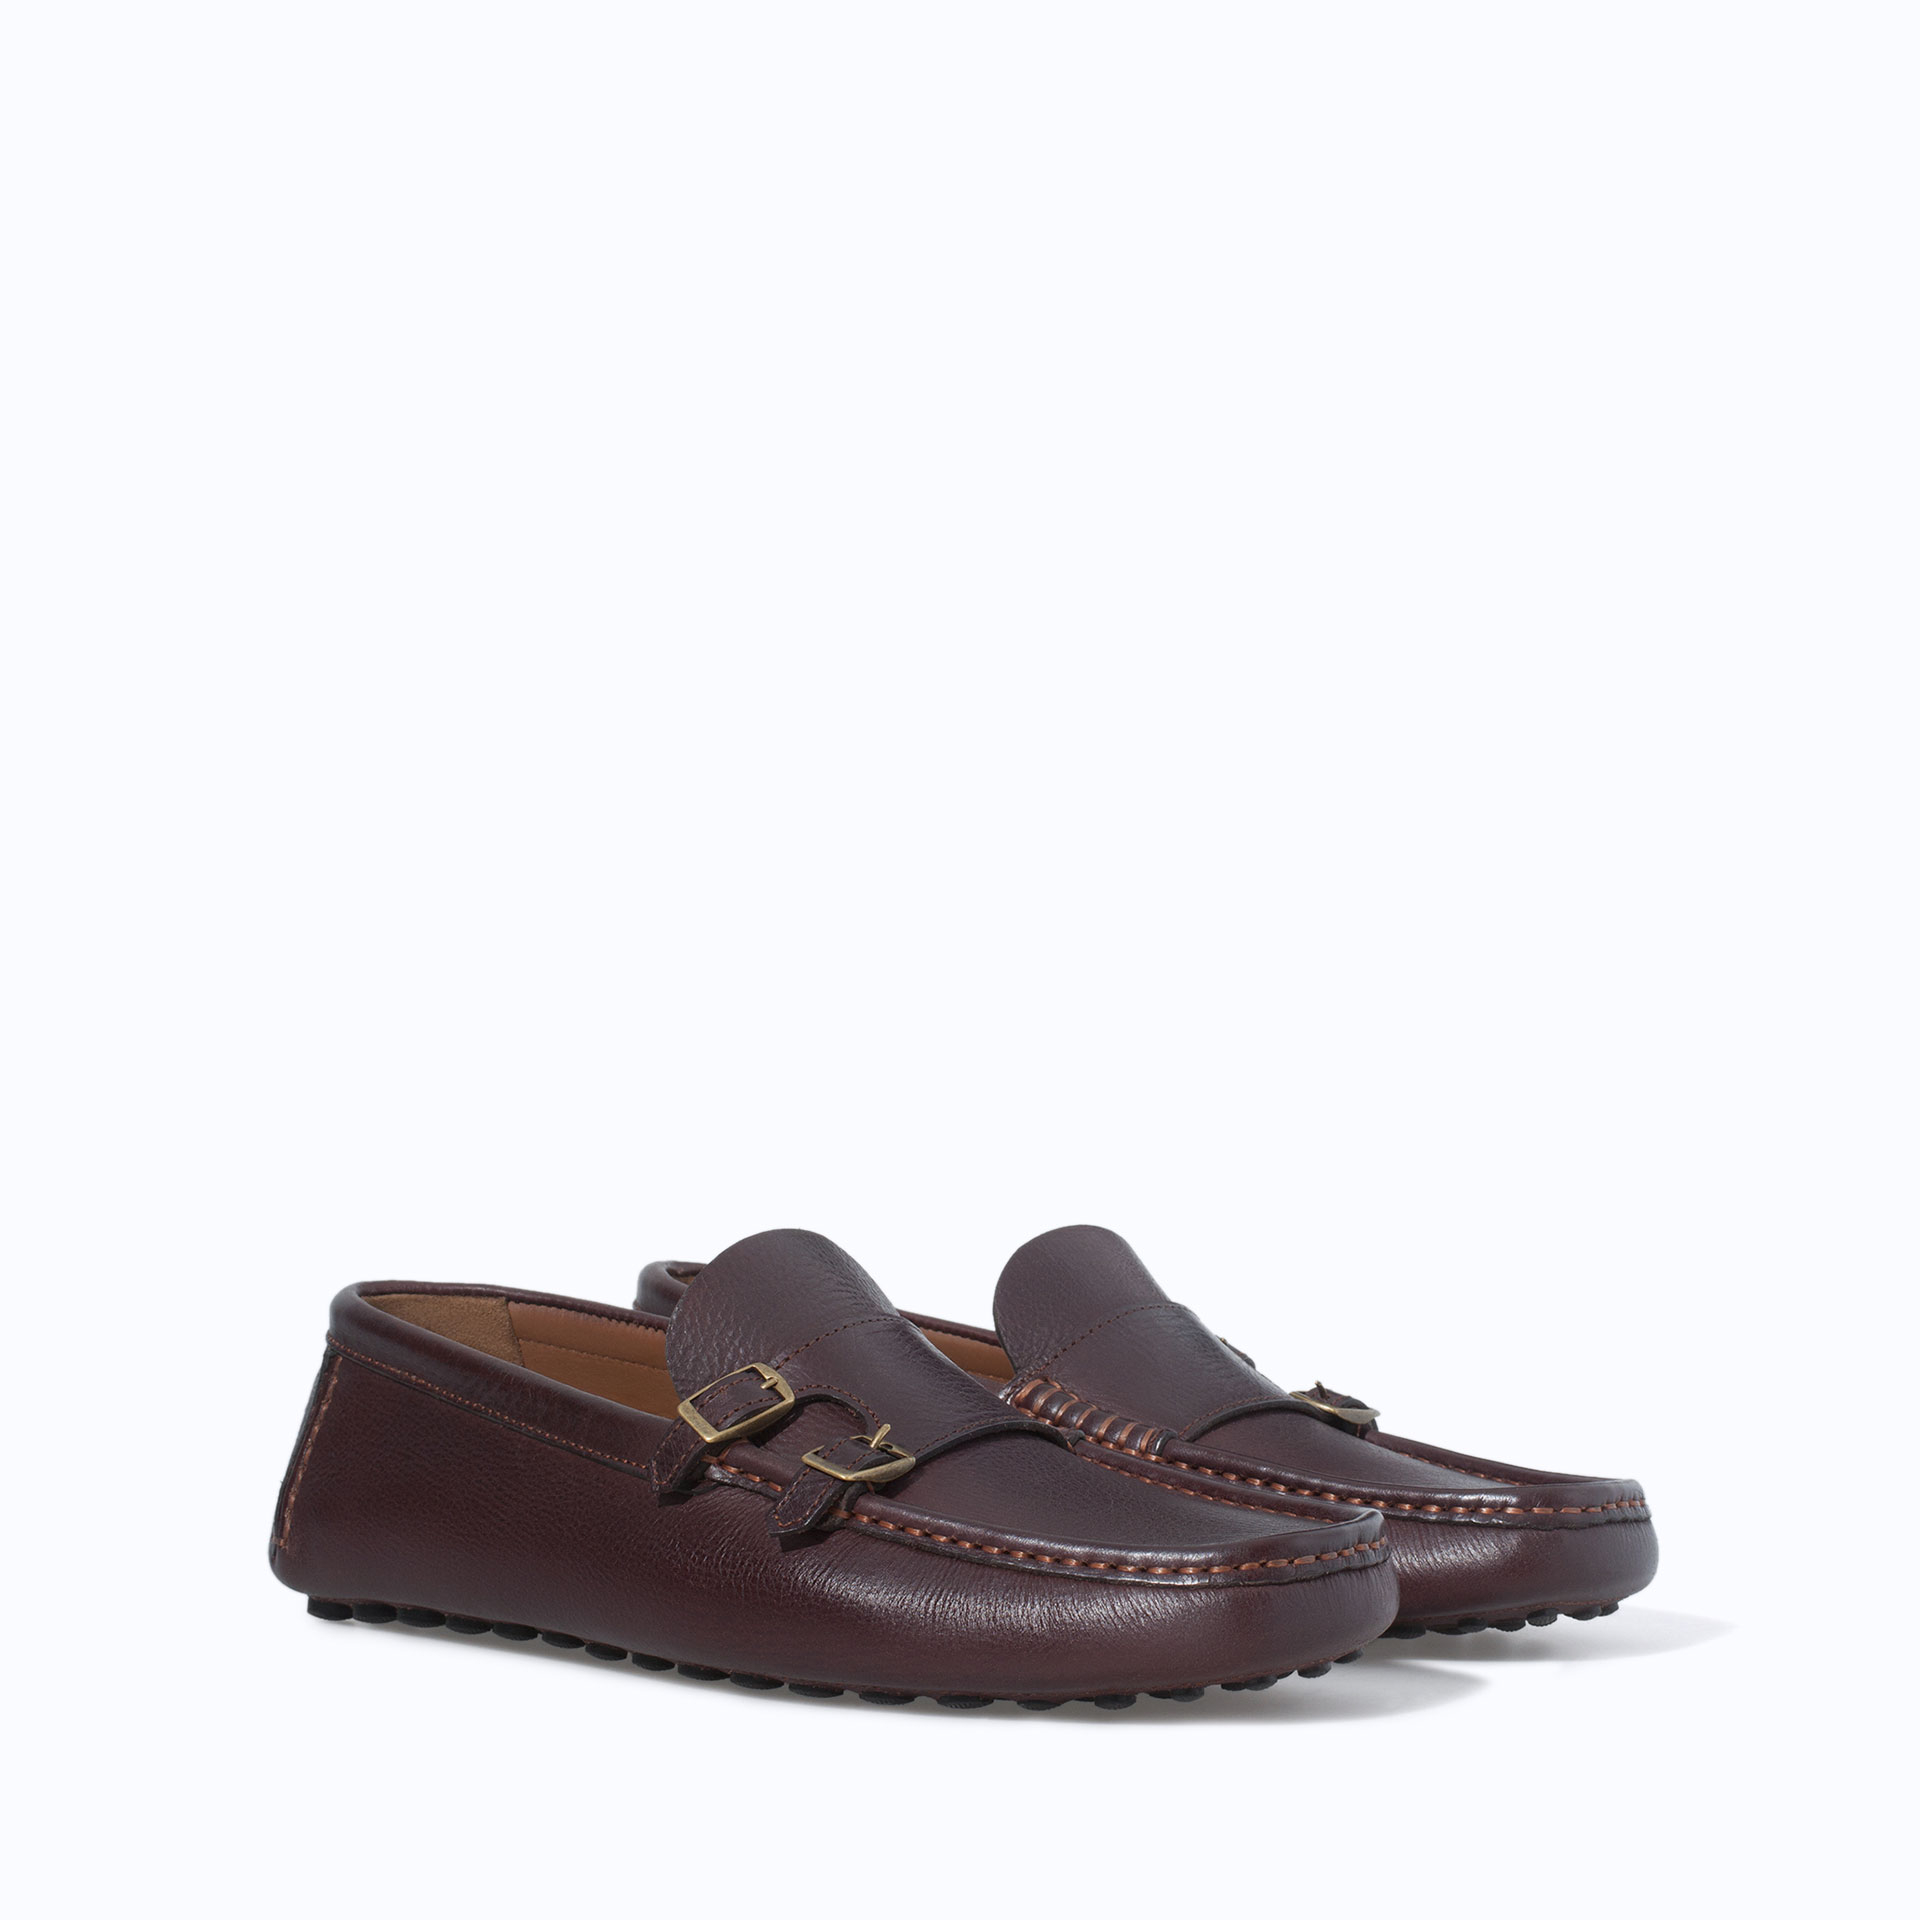 Zara Driving Shoes With Buckles In Brown For Men Lyst